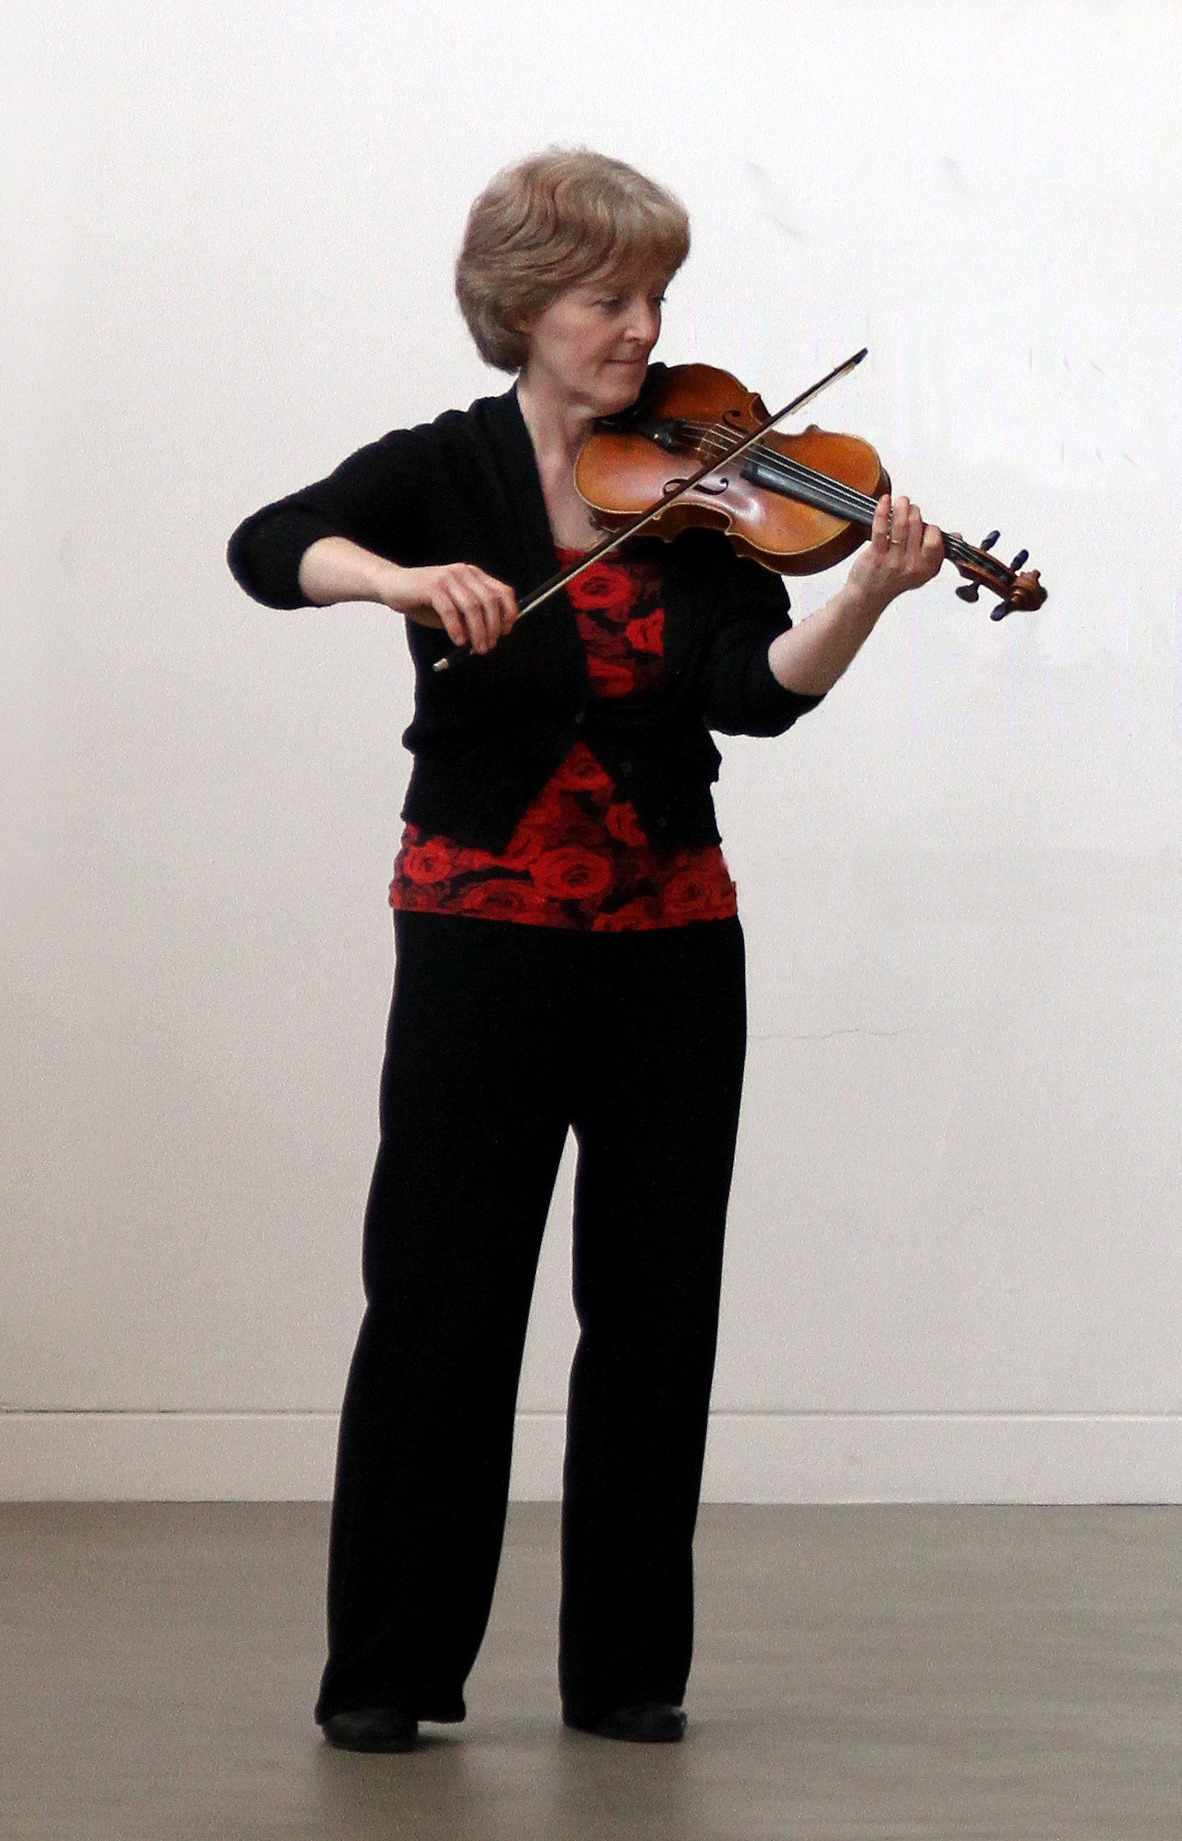 Shirley Richards, Violinist